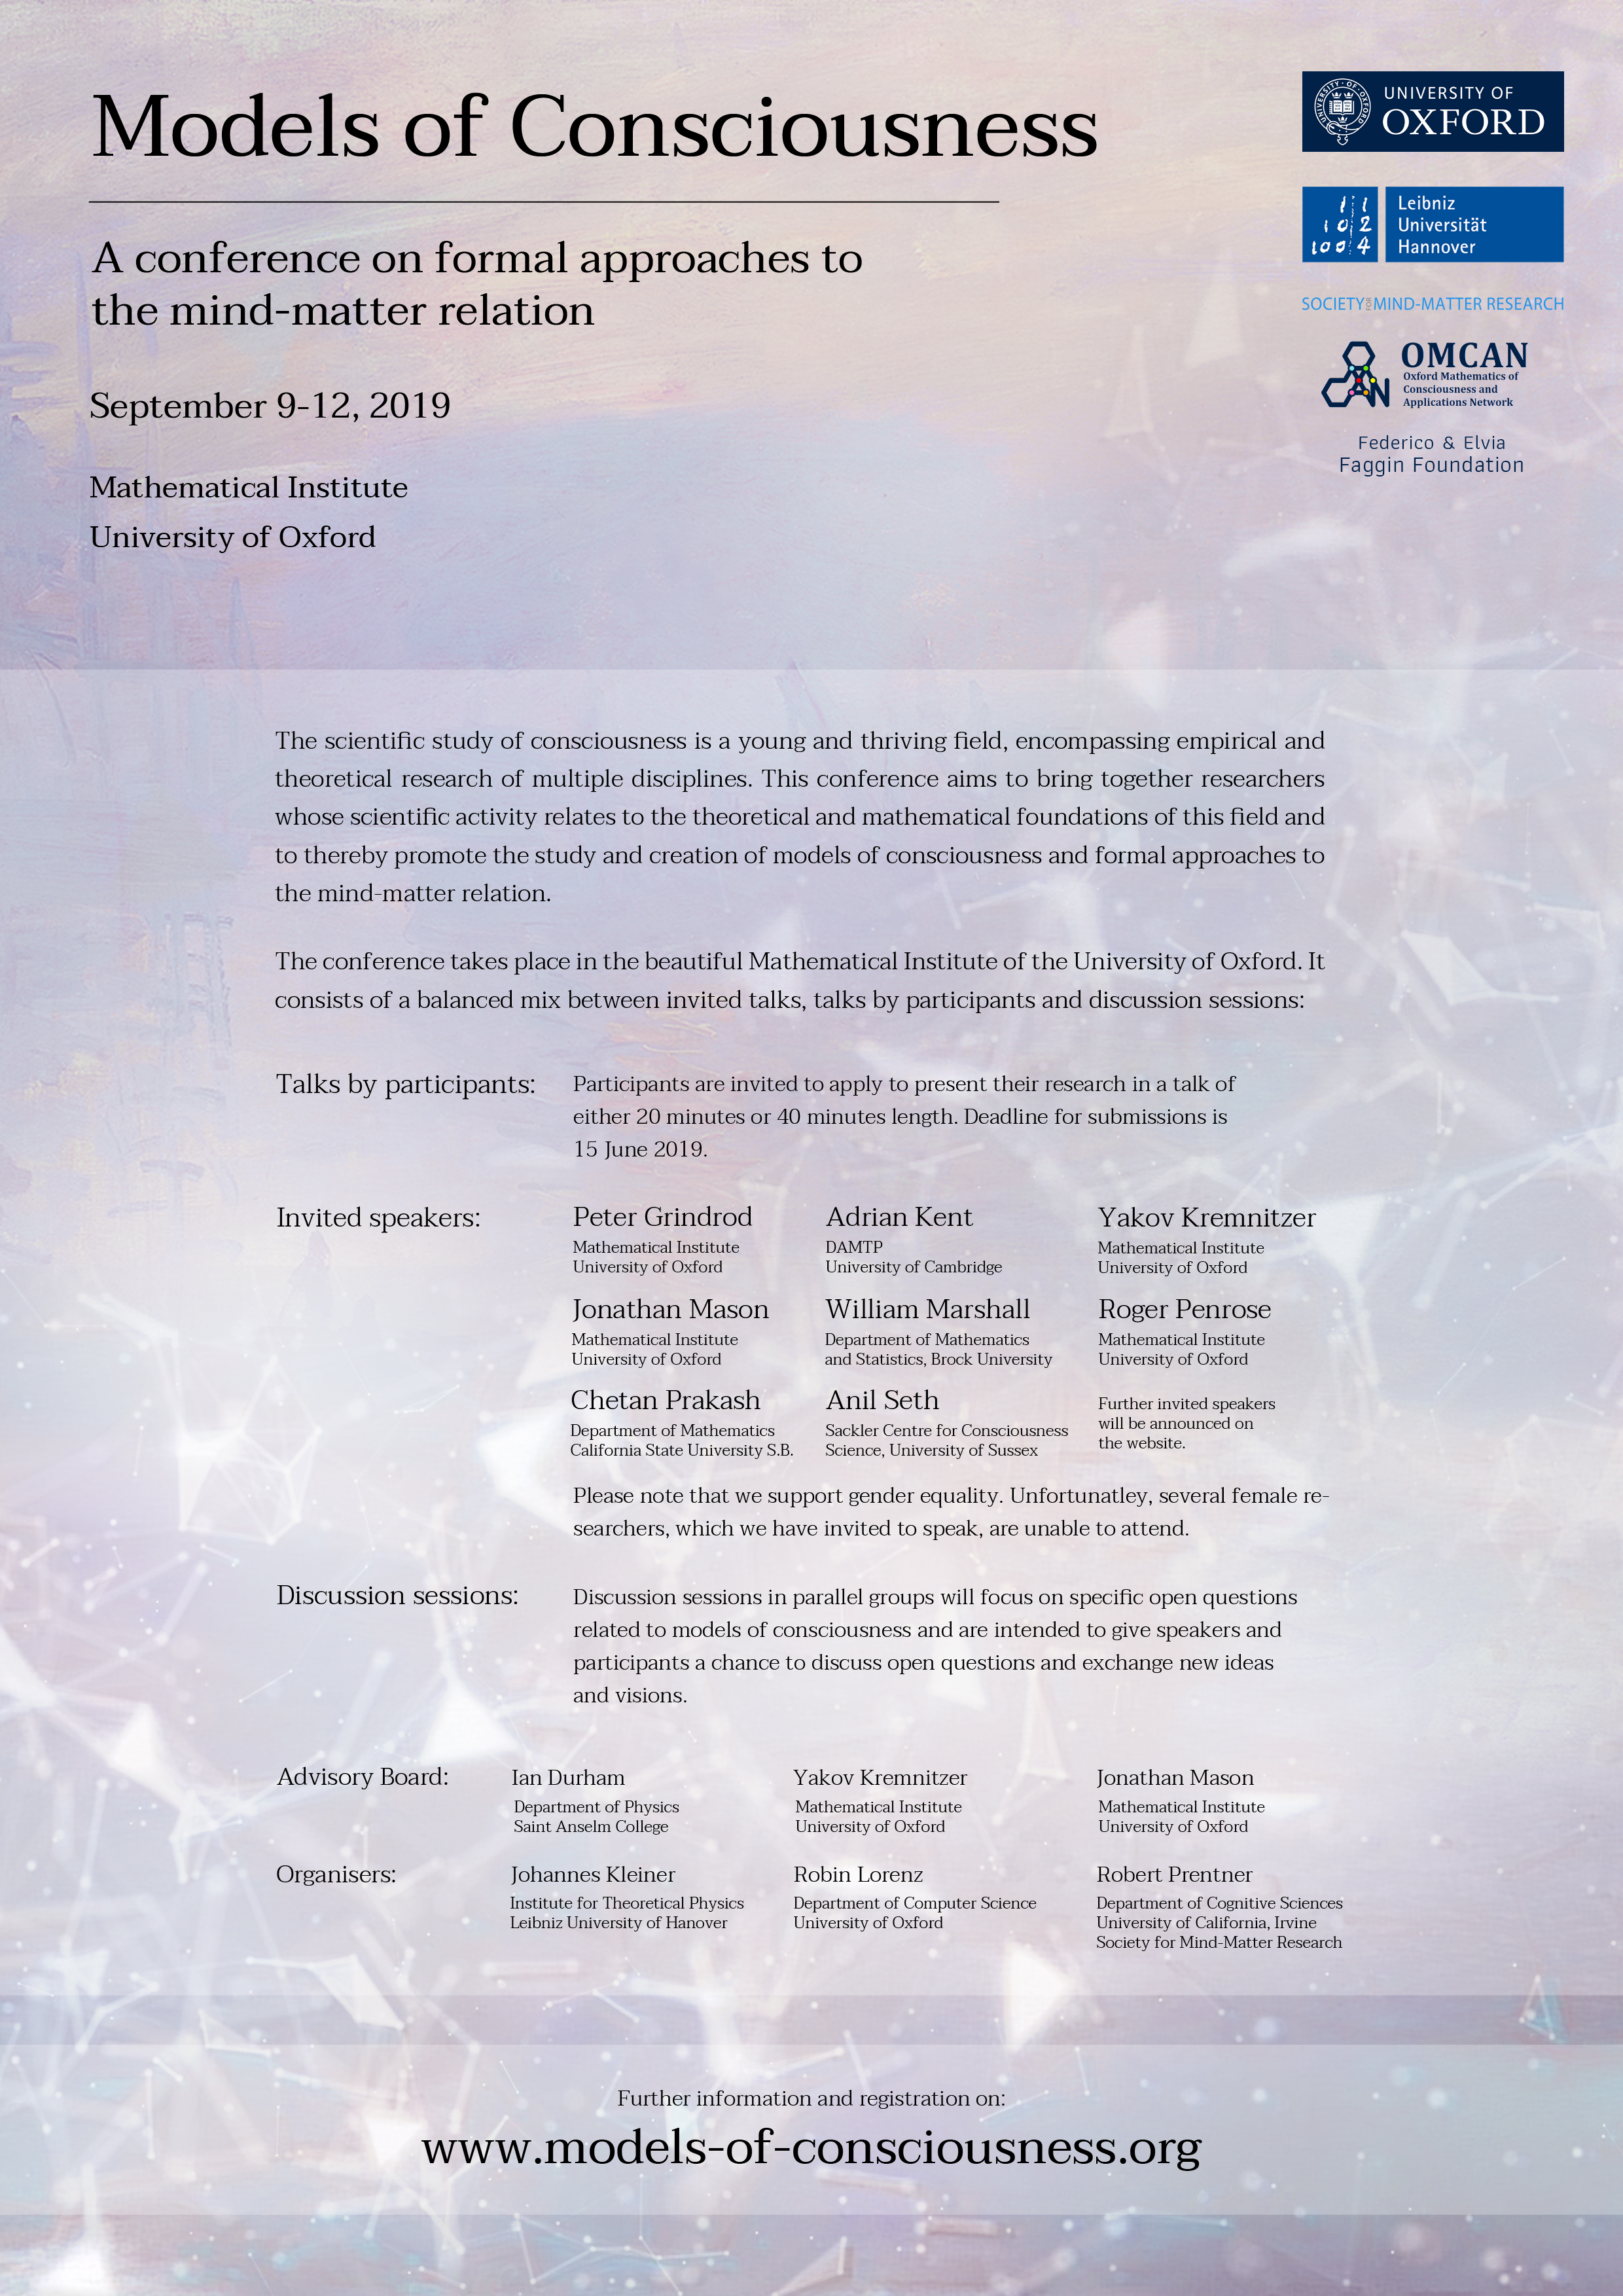 Models of Consciousness Conference (Oxford)